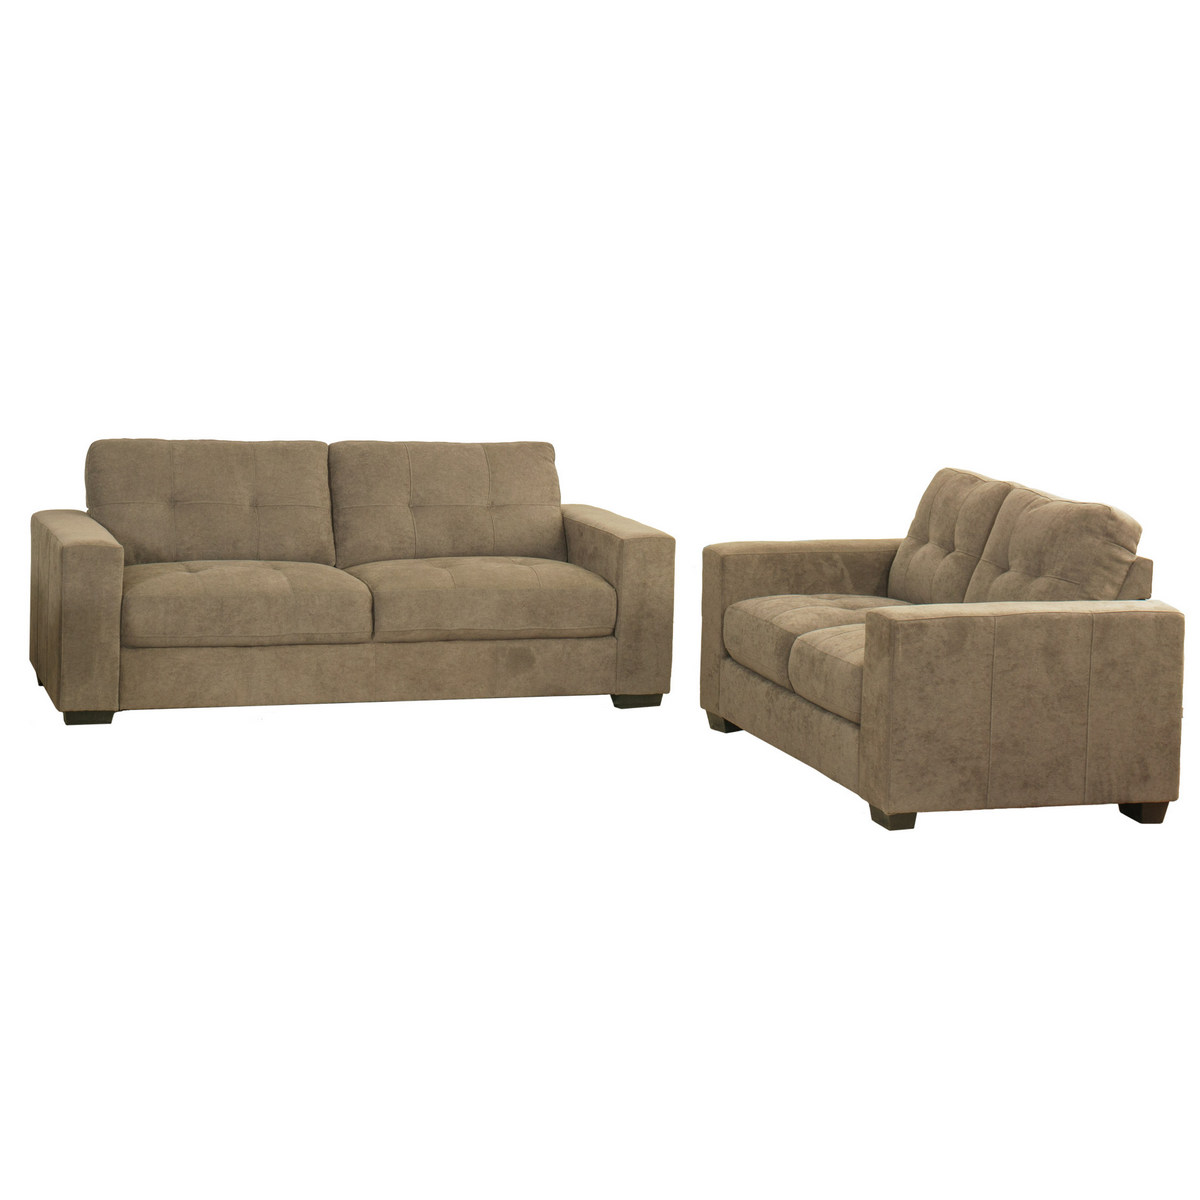 Corliving Club Tufted Brown Chenille Fabric Sofa Set